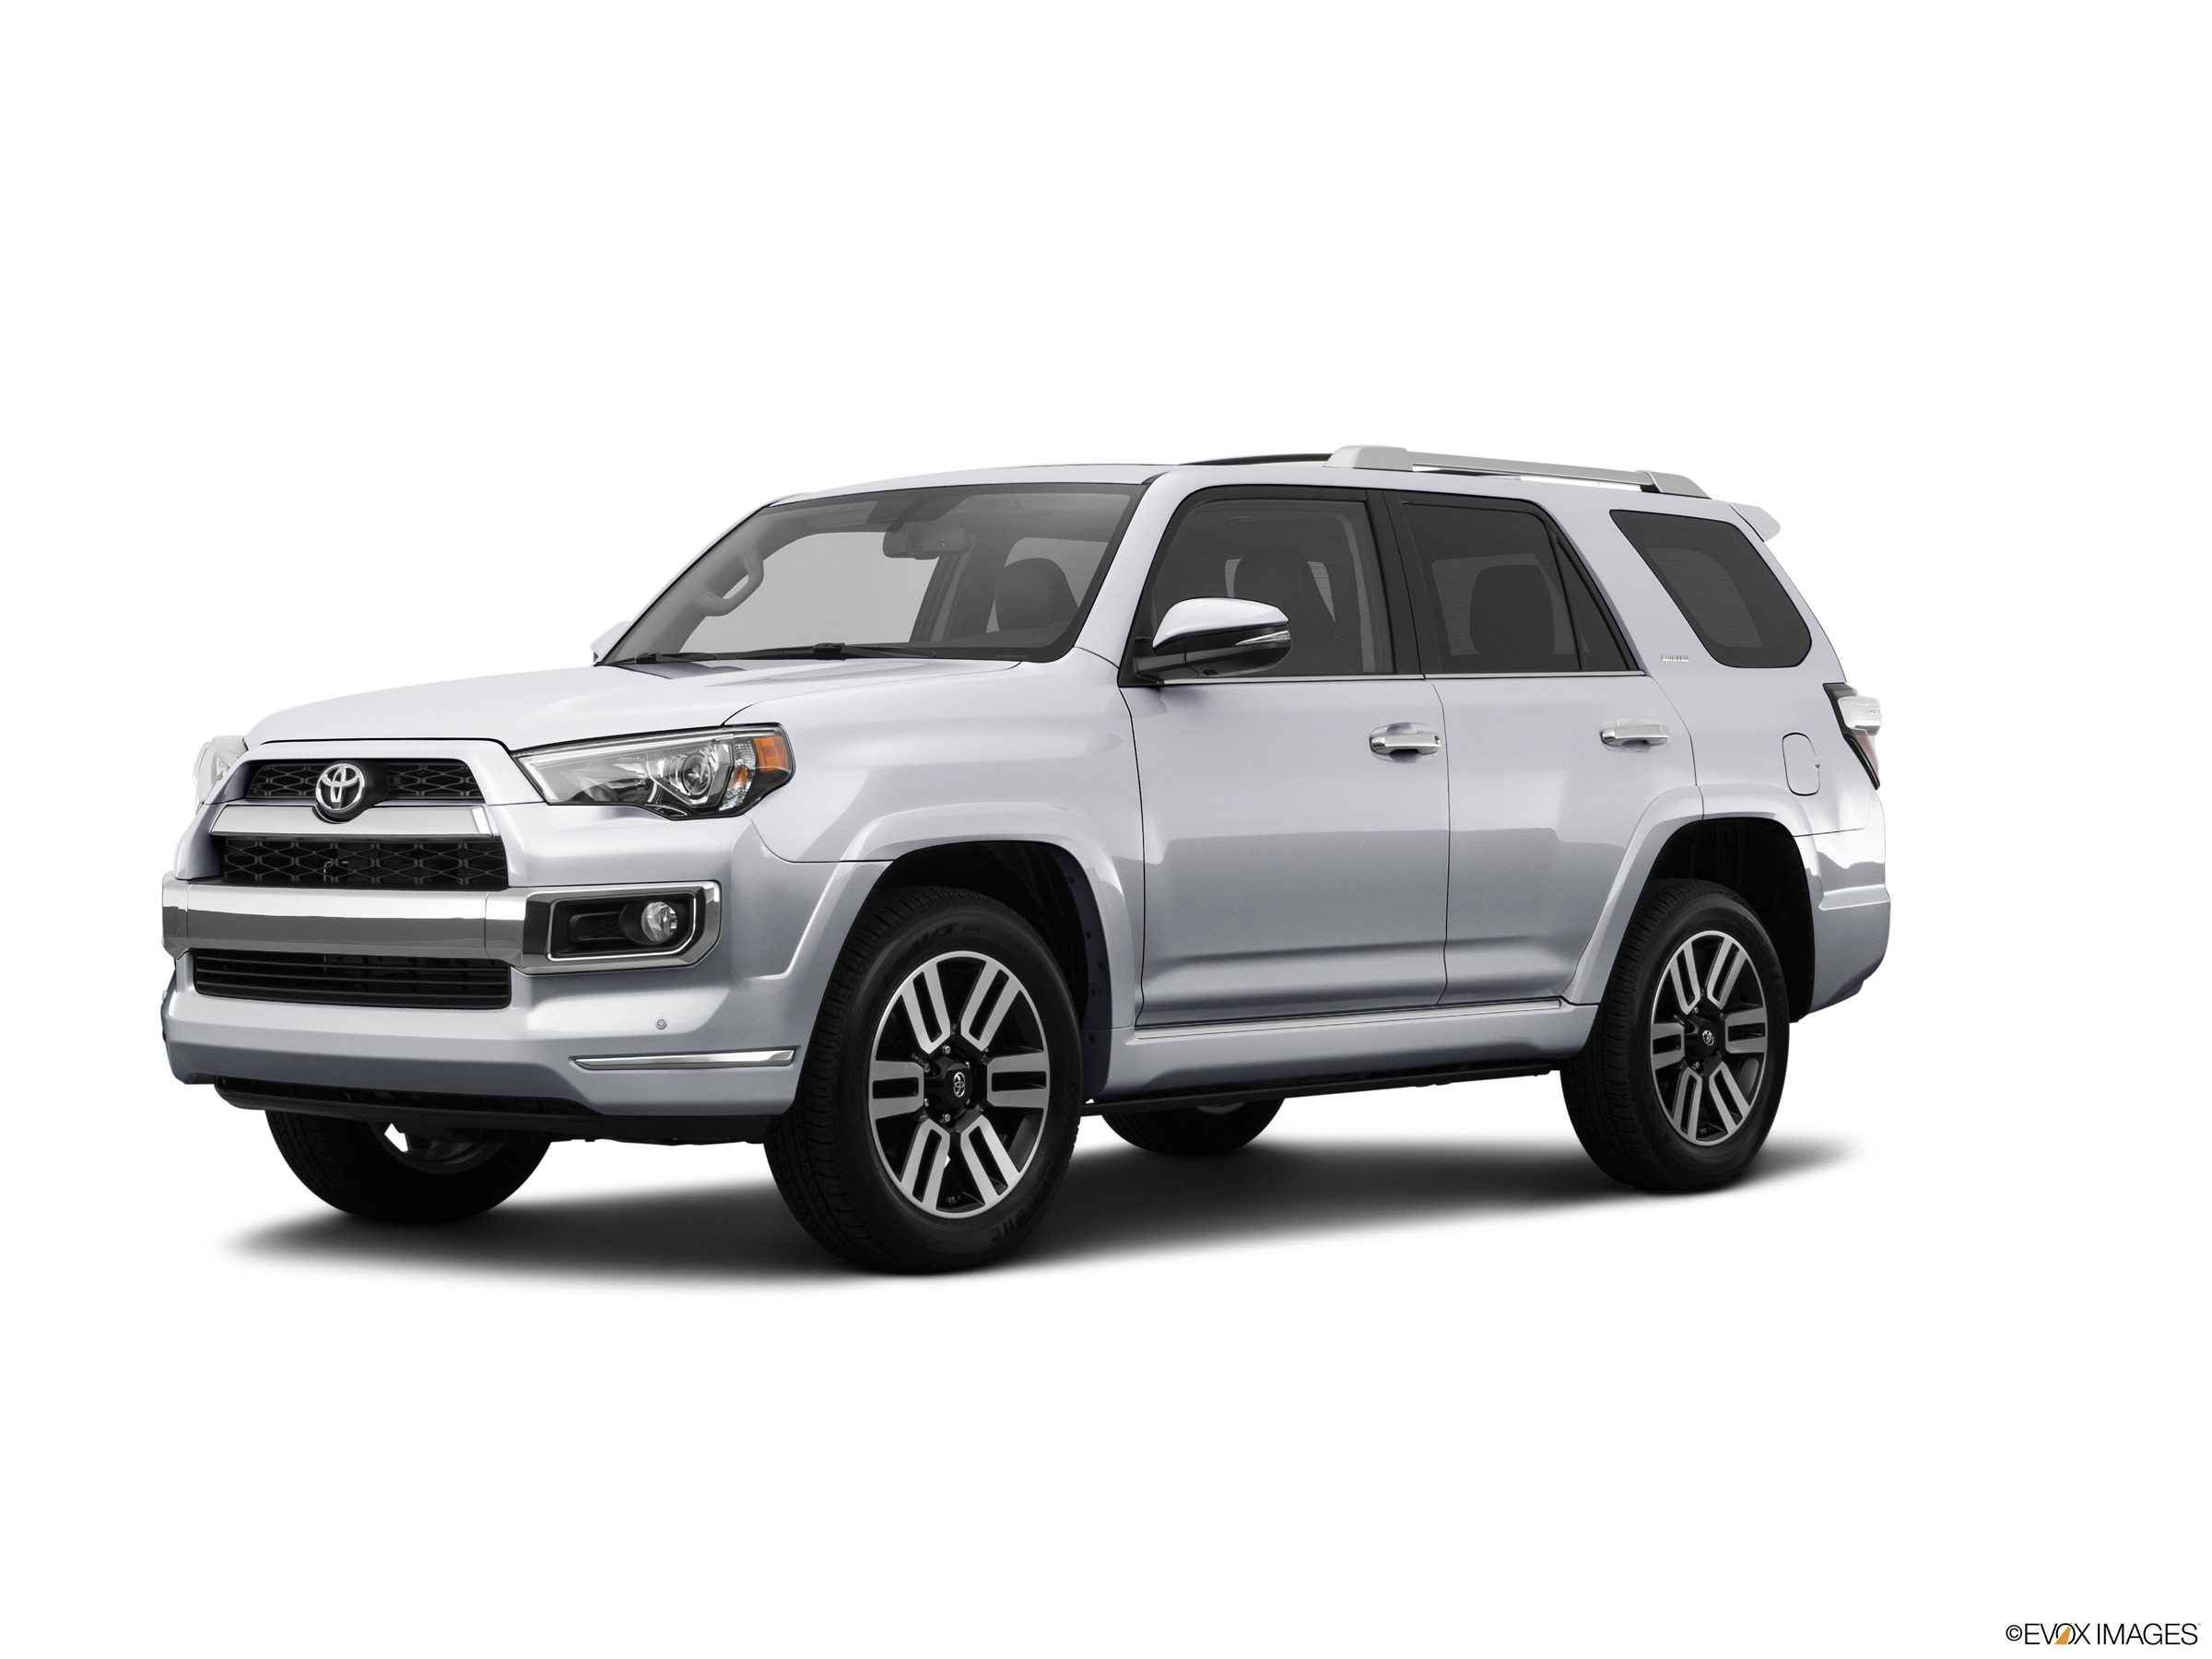 Certified 2015 Toyota 4Runner LIMITED with VIN JTEBU5JR9F5250383 for sale in Maplewood, Minnesota